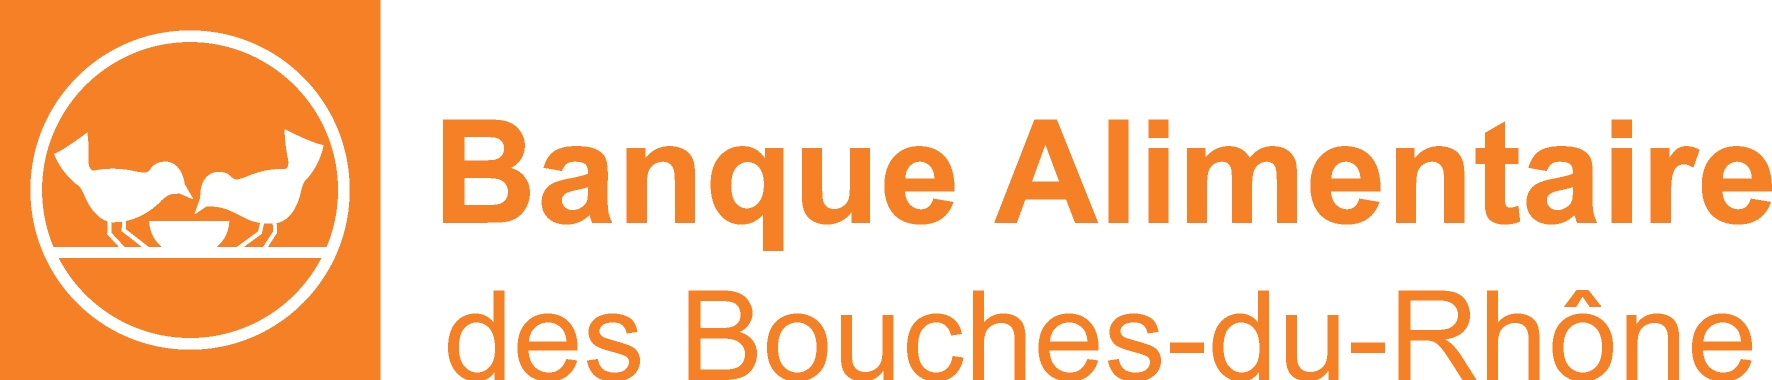 Logo_Banque_Alimentaire_13